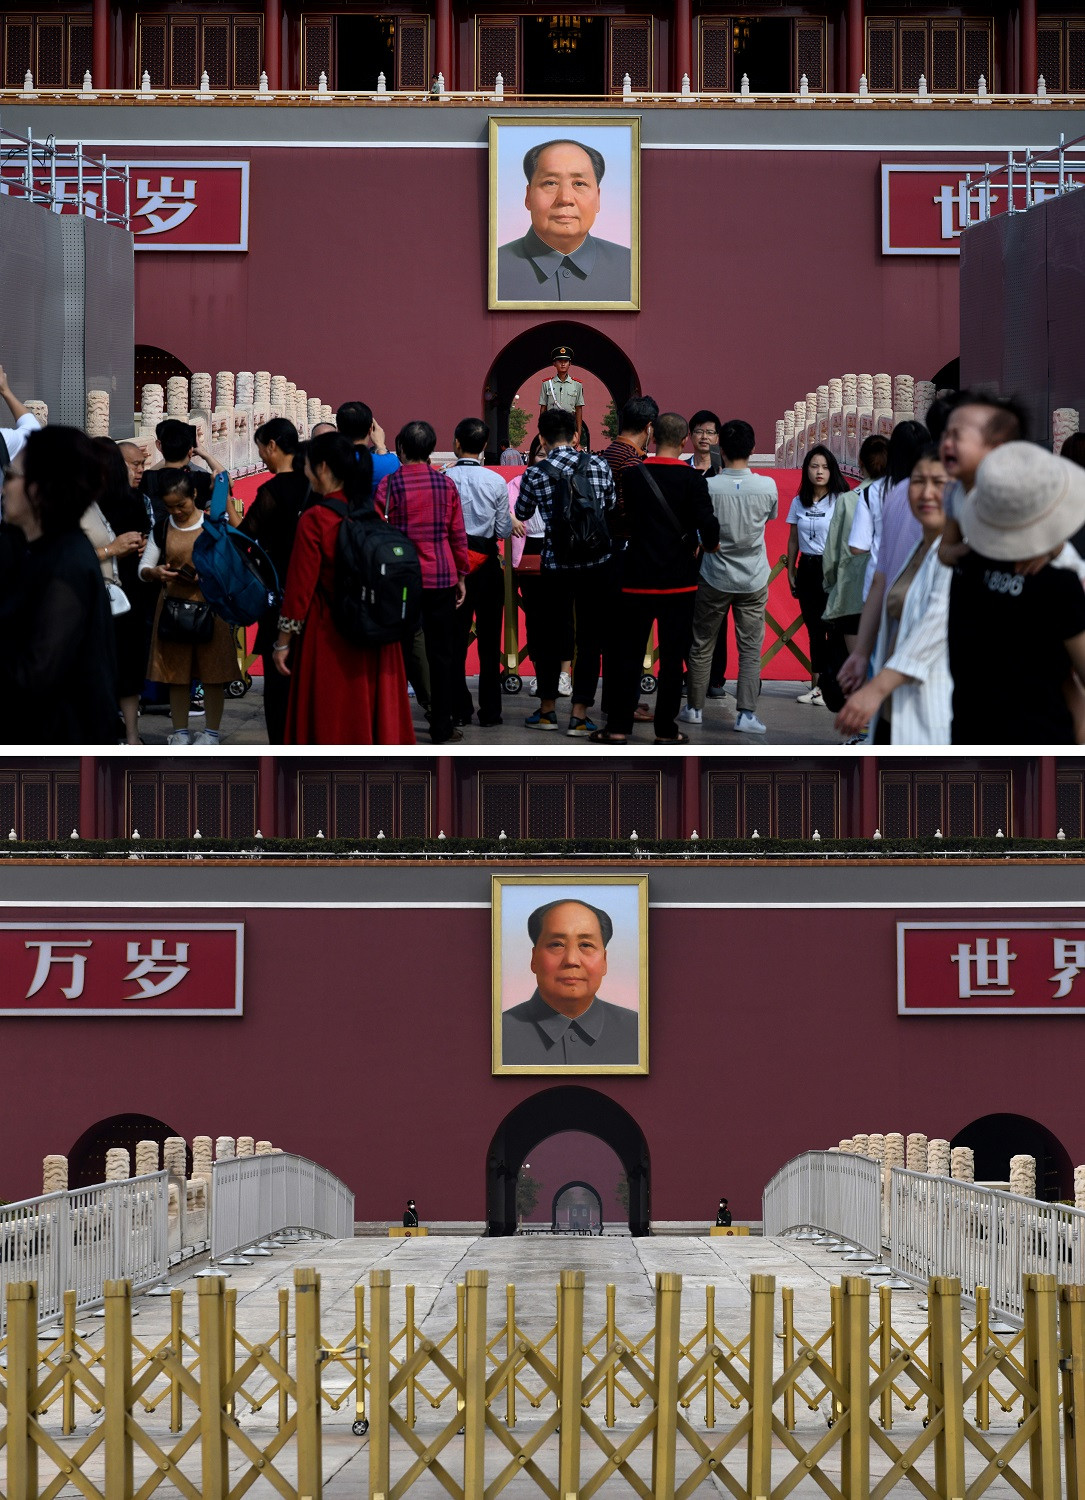 This combination photo created on March 8, 2020 shows tourists standing before a Chinese paramilitary policeman (C) in front of a portrait of late communist leader Mao Zedong at Tiananmen Gate in Beijing on September 20, 2019 (top) and paramilitary police officers wearing facemasks, amid concerns about the spread of the COVID-19 novel coronavirus, at Tiananmen Gate in Beijing on March 6, 2020.